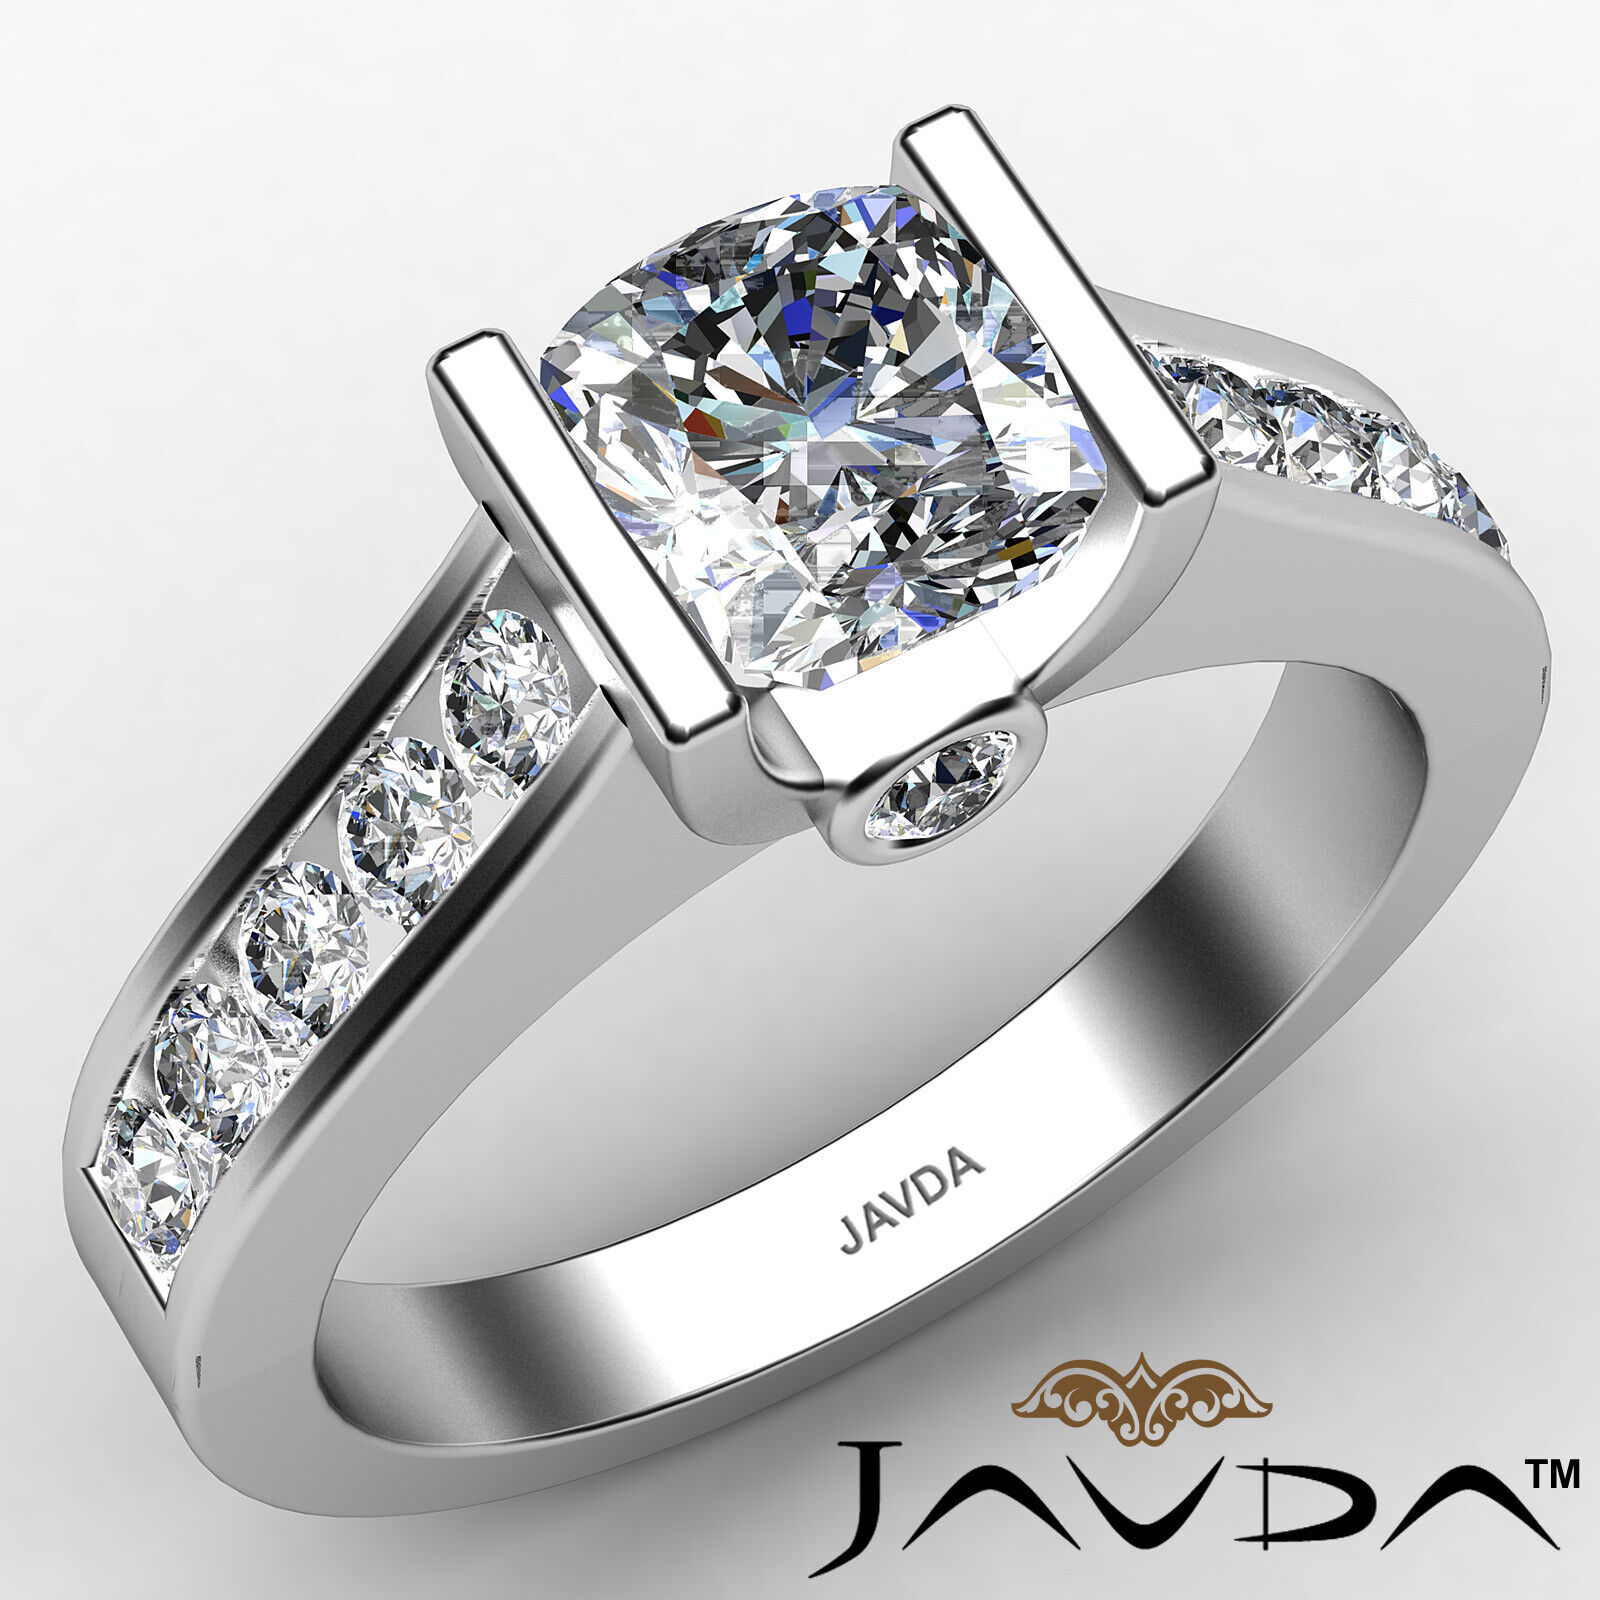 Cushion Diamond Engagement Ring GIA Certified K Color & VS2 clarity 1.4 ctw